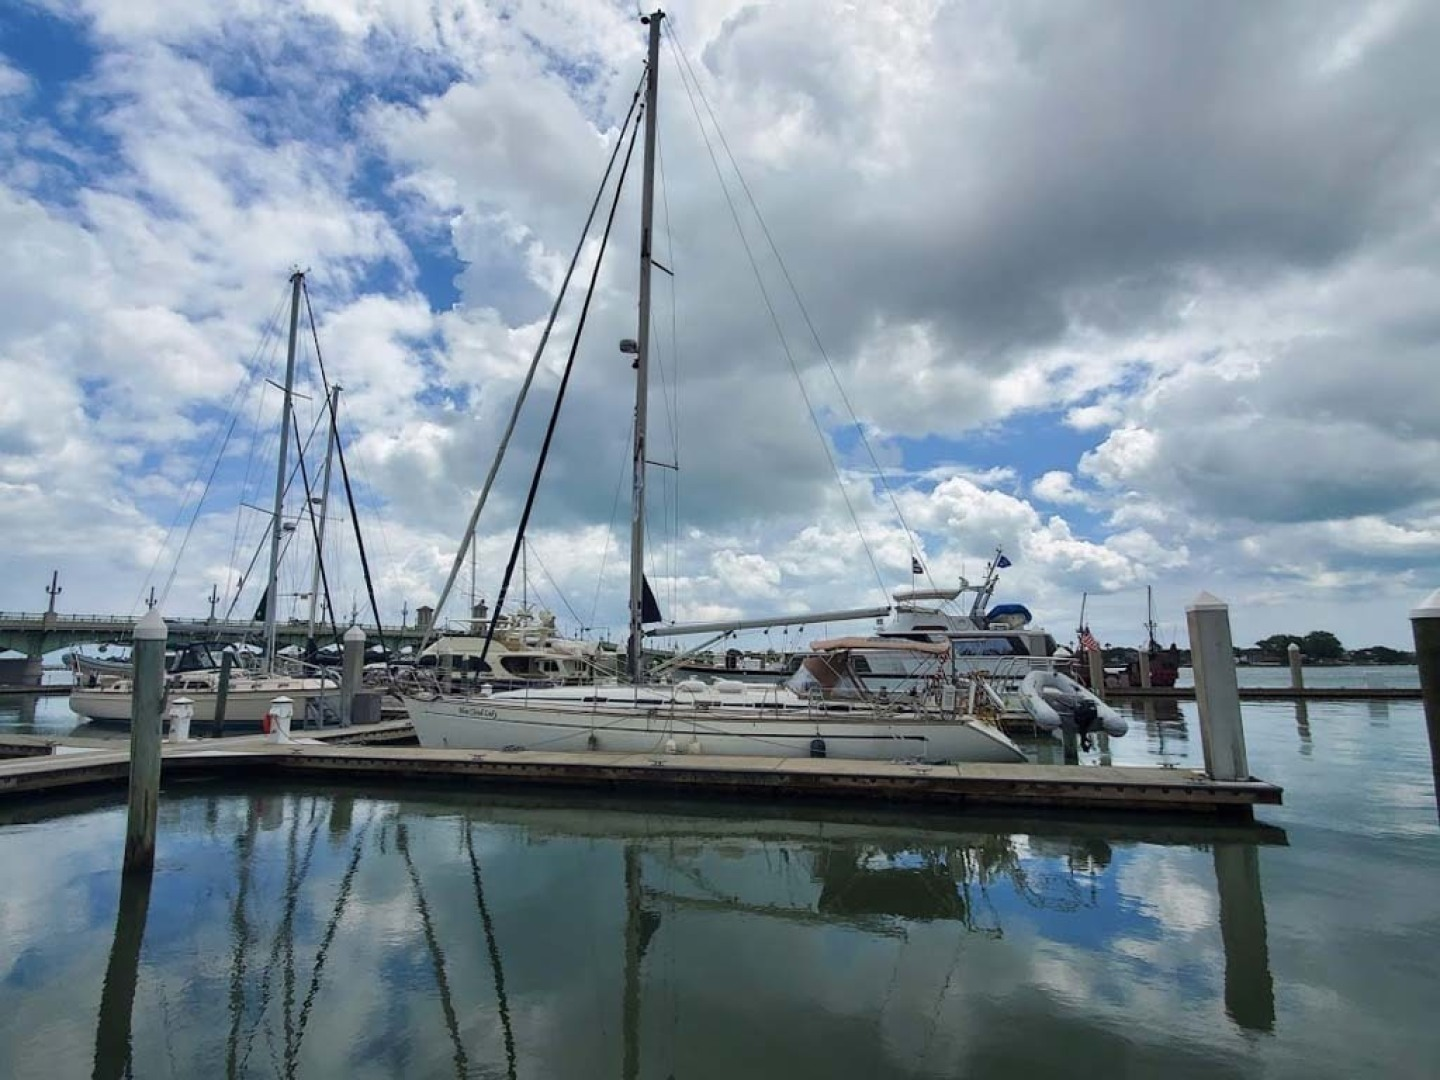 Bavaria-49 2003-BLUE CLOUD LADY Jacksonville-Florida-United States-Port View-1412459 | Thumbnail